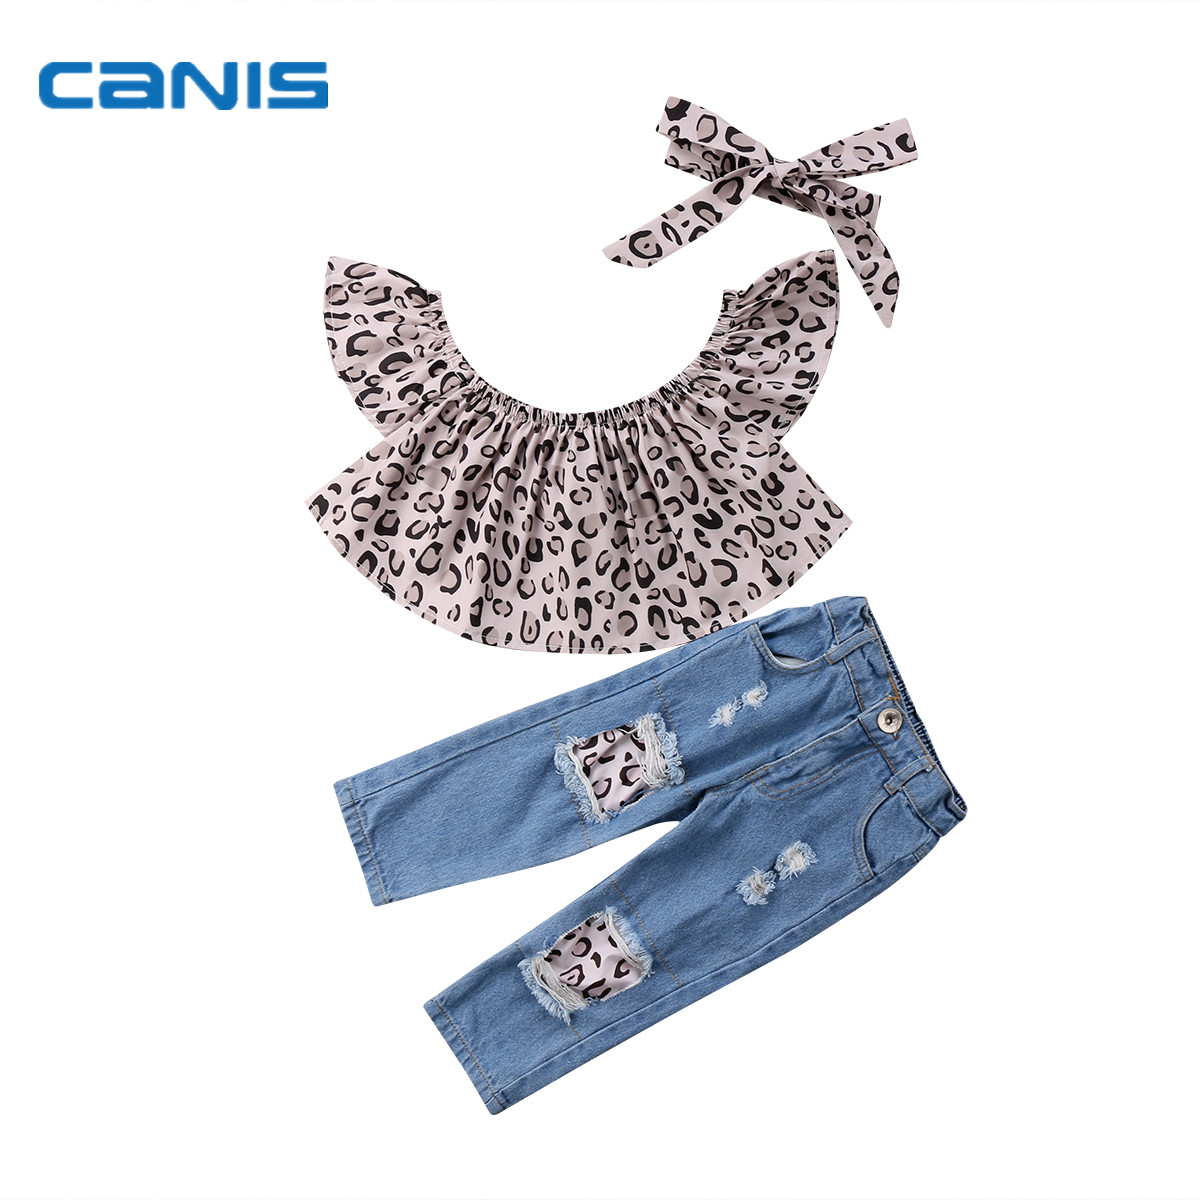 2018 Brand New Toddler Infant Child kids baby Girl Outfits Clothes Leopard Tops Destroyed Jeans headwear 3Pcs Fashion Summer Set cute toddler baby girl cotton floral leopard bodysuit shoe hairband 3pcs outfits set summer newborn baby girl clothes